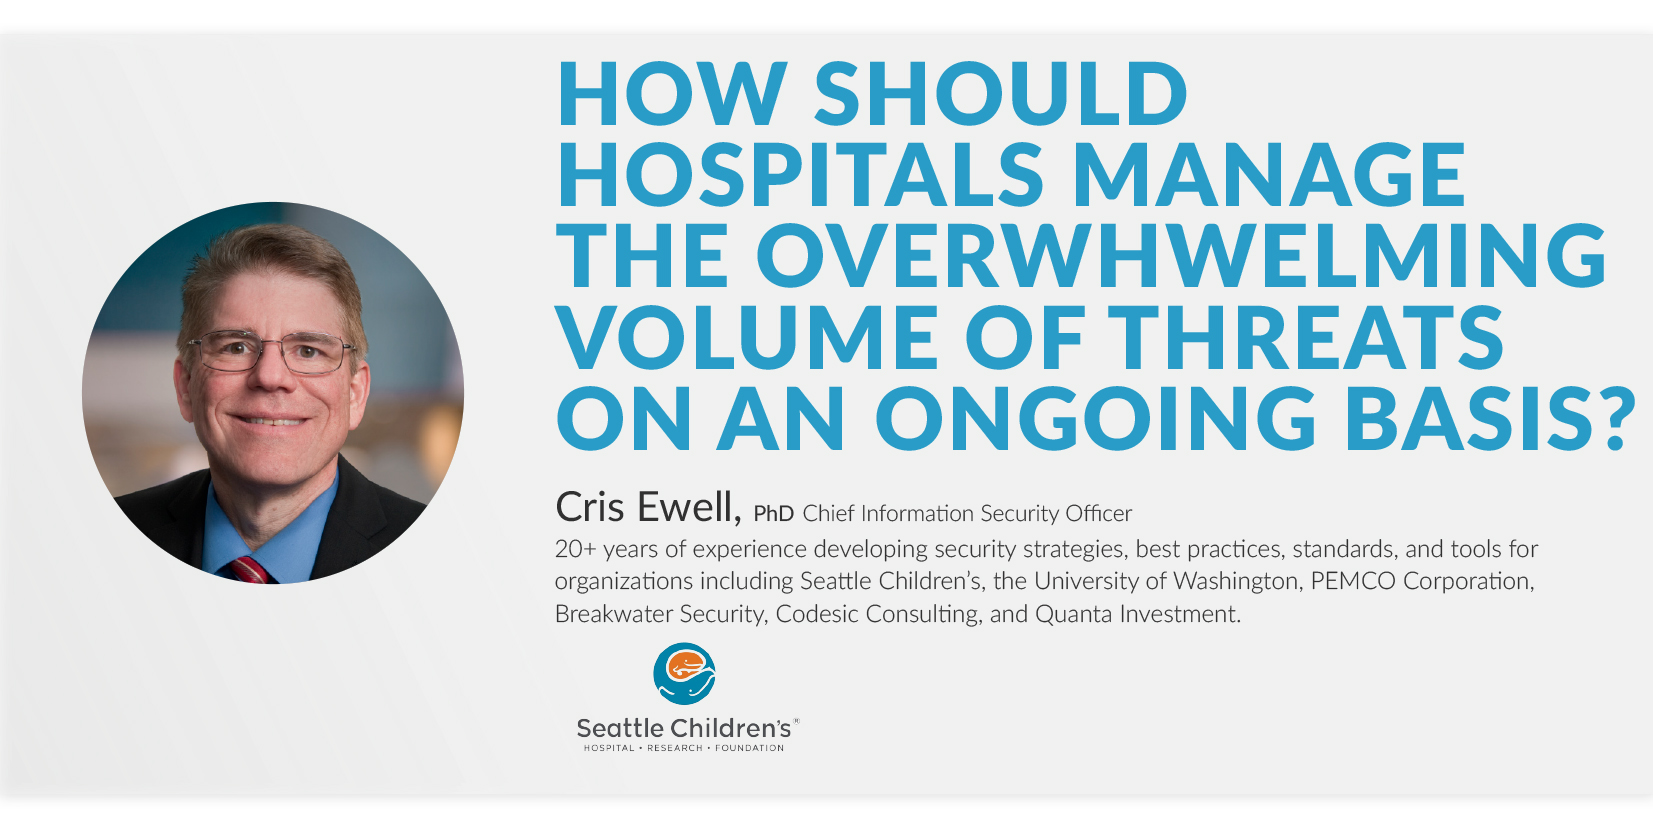 how should hospitals manage the overwelming volume of threats on an ongoing basis